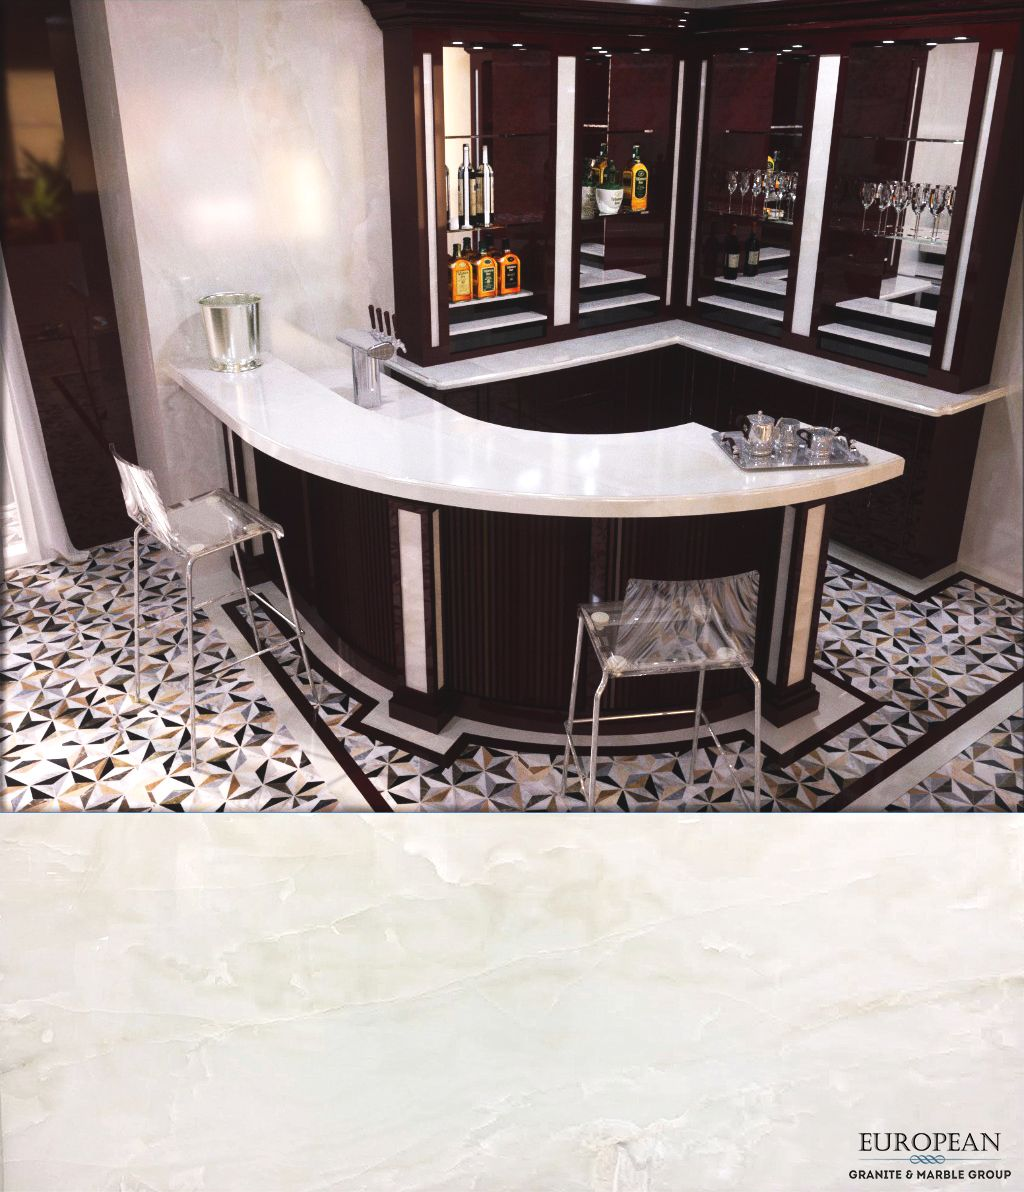 This Bar Design Accentuates The Pure White Onyx Countertops By Contrasting  With Dark Wood Details.